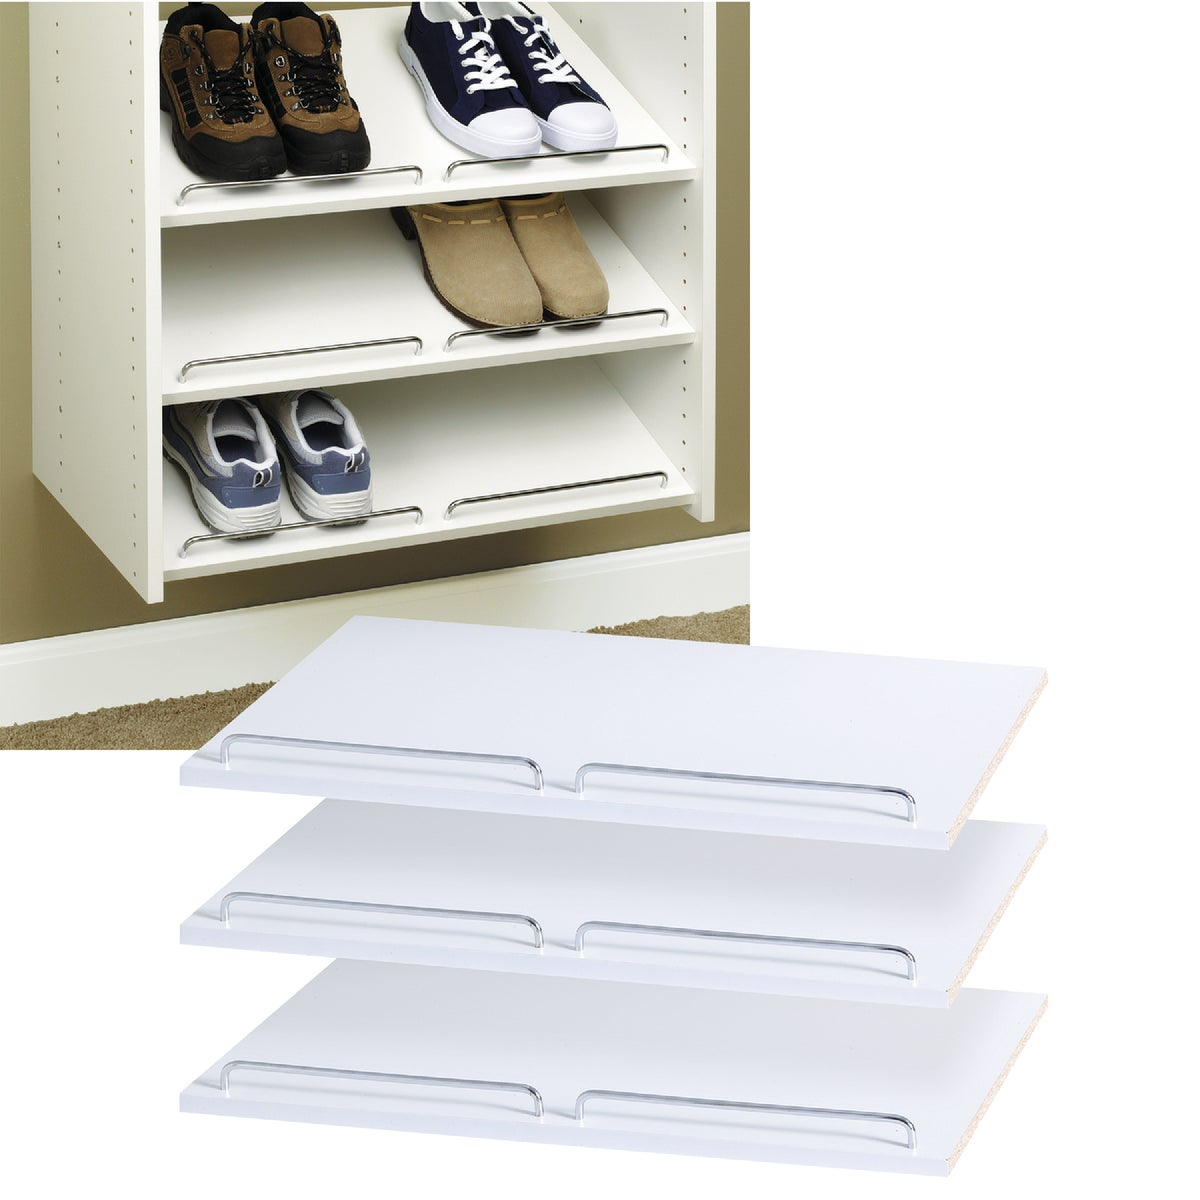 LAMINATED SHOE SHELVES - RS1600 by The Stow Company